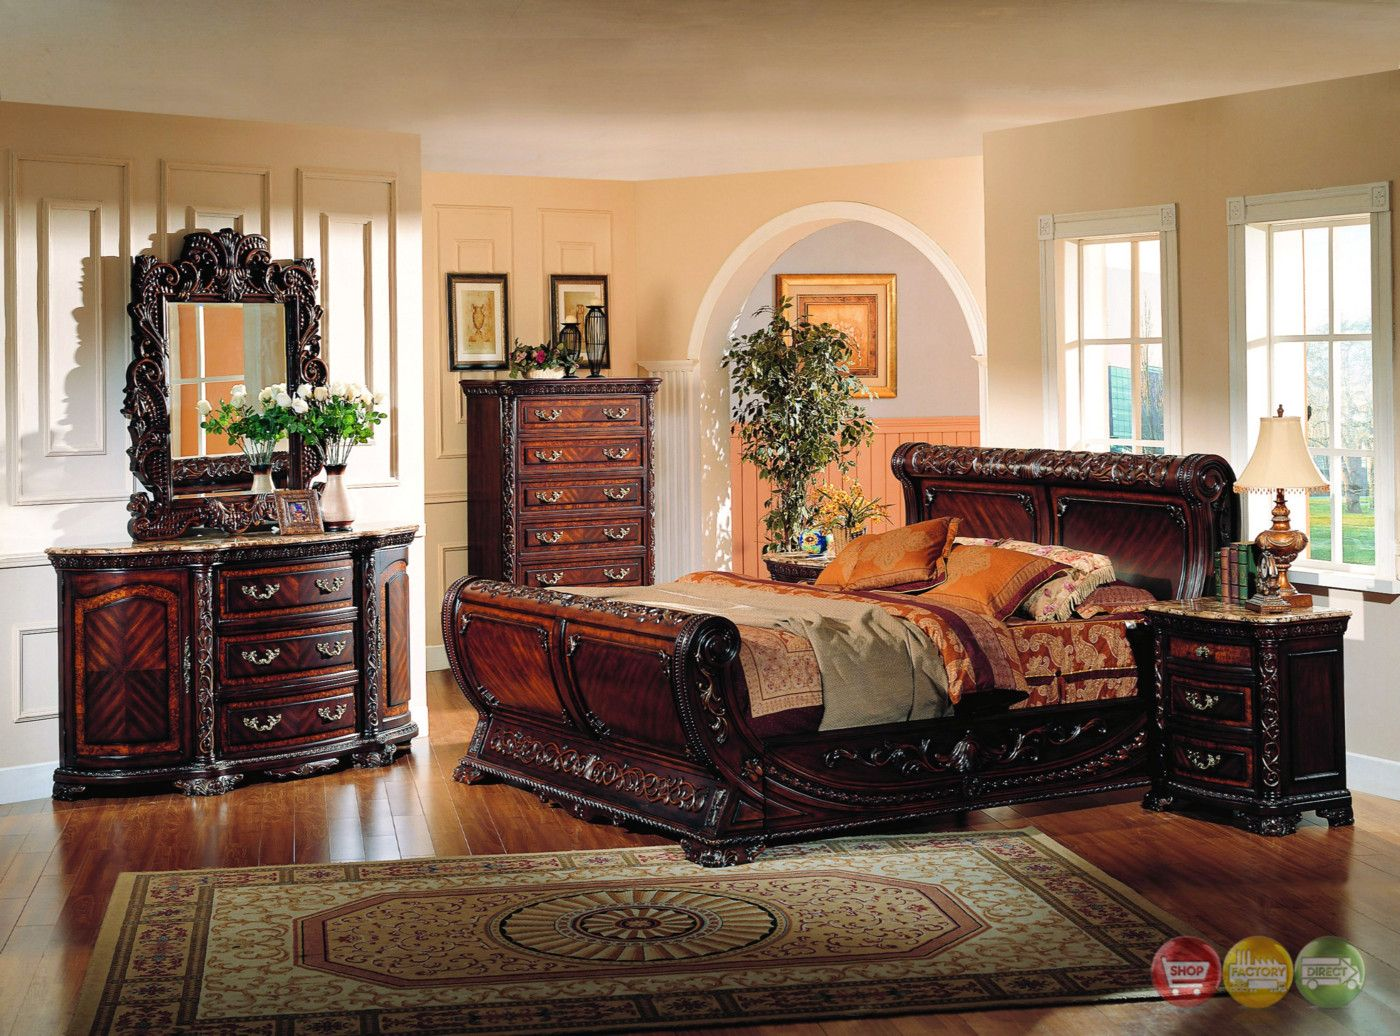 Cannes Sleigh Bed Traditional Luxury Bedroom Furniture Collection Bedroom Set Luxury Bedroom Furniture Bedroom Collections Furniture